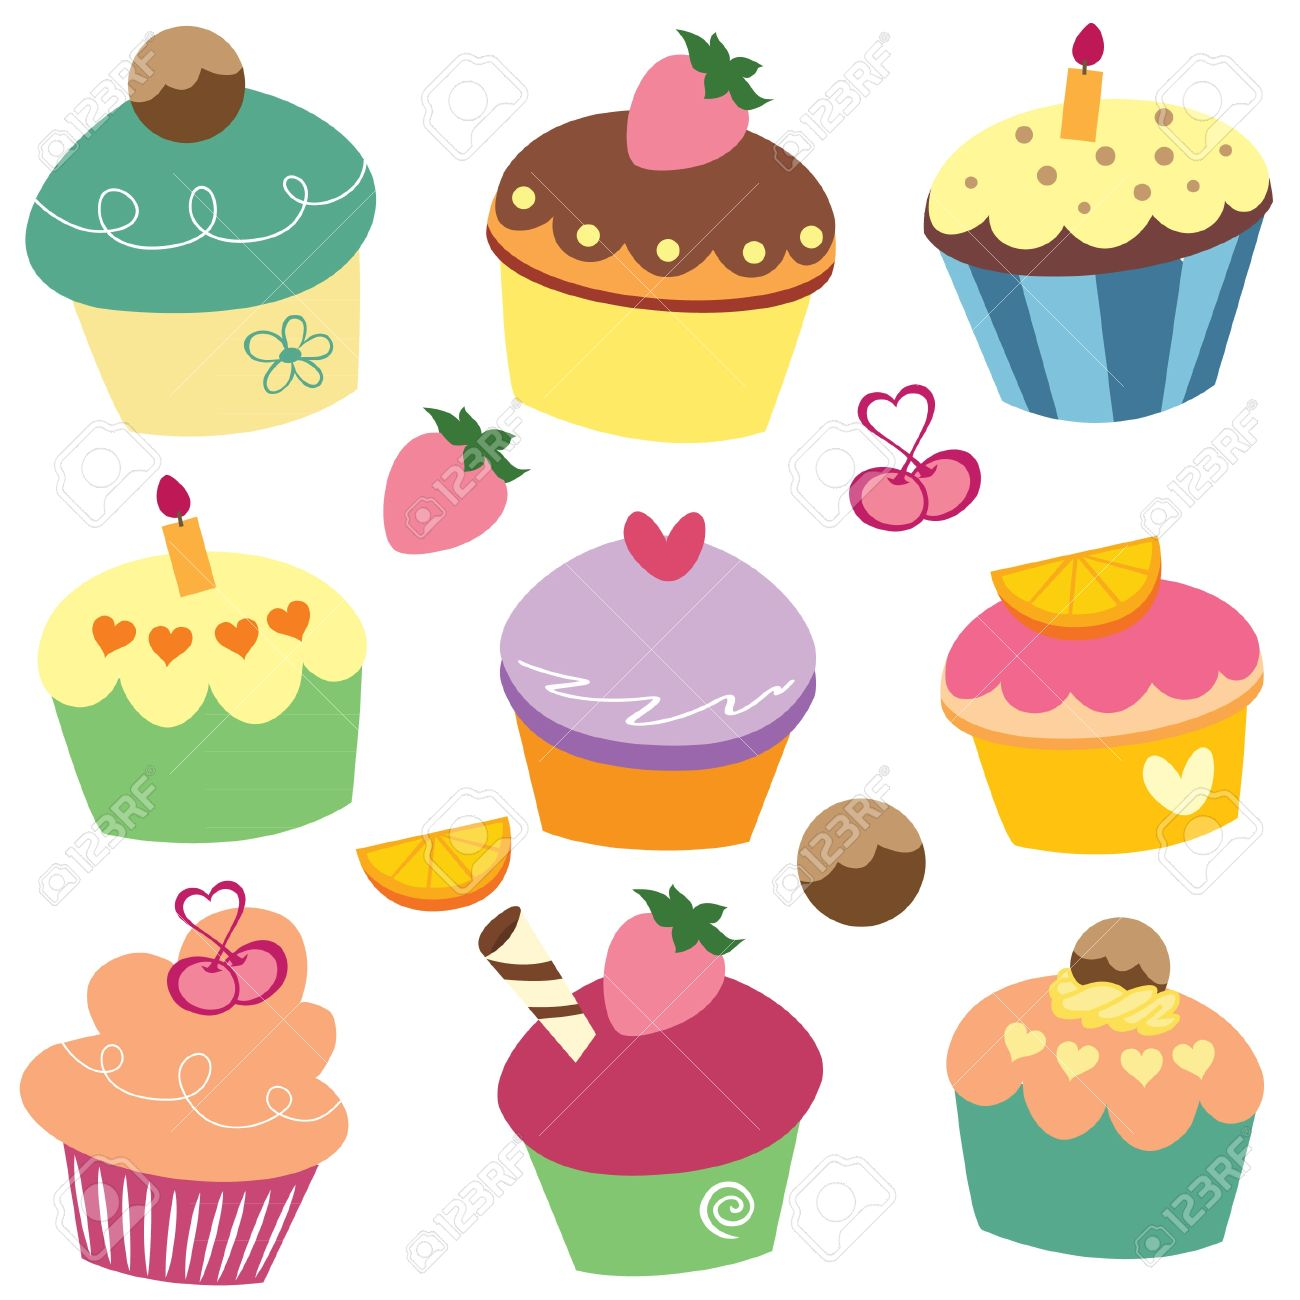 yummy cupcakes clip art royalty free cliparts vectors and stock rh 123rf com cupcakes clipart images cupcakes clipart wallpaper